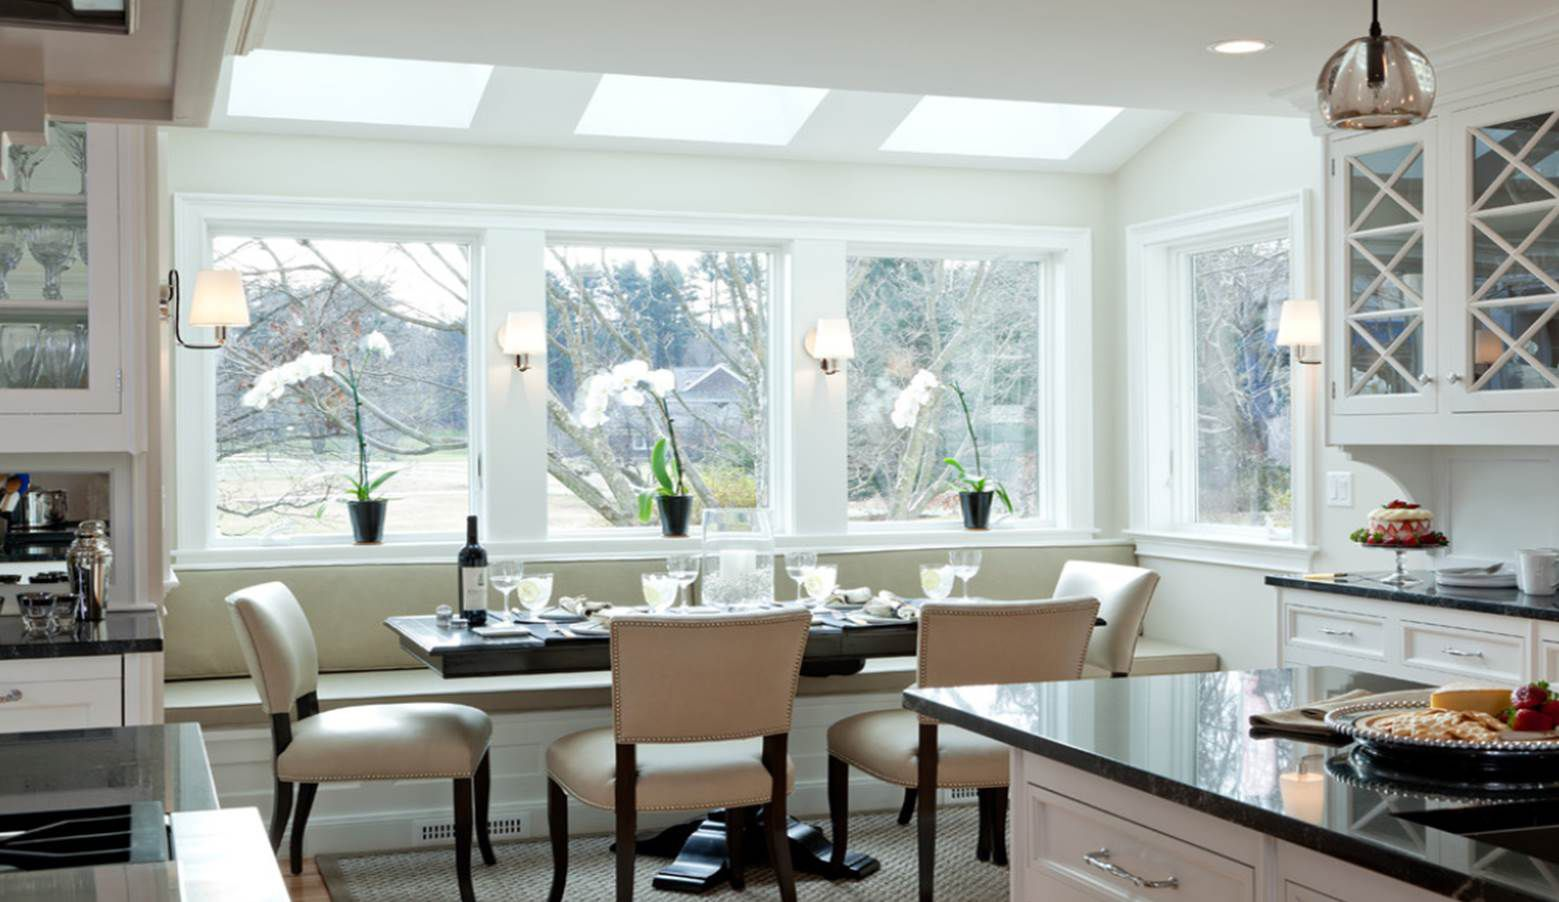 Pin by Sarah Awan on triangle windows | Pinterest | Kitchens